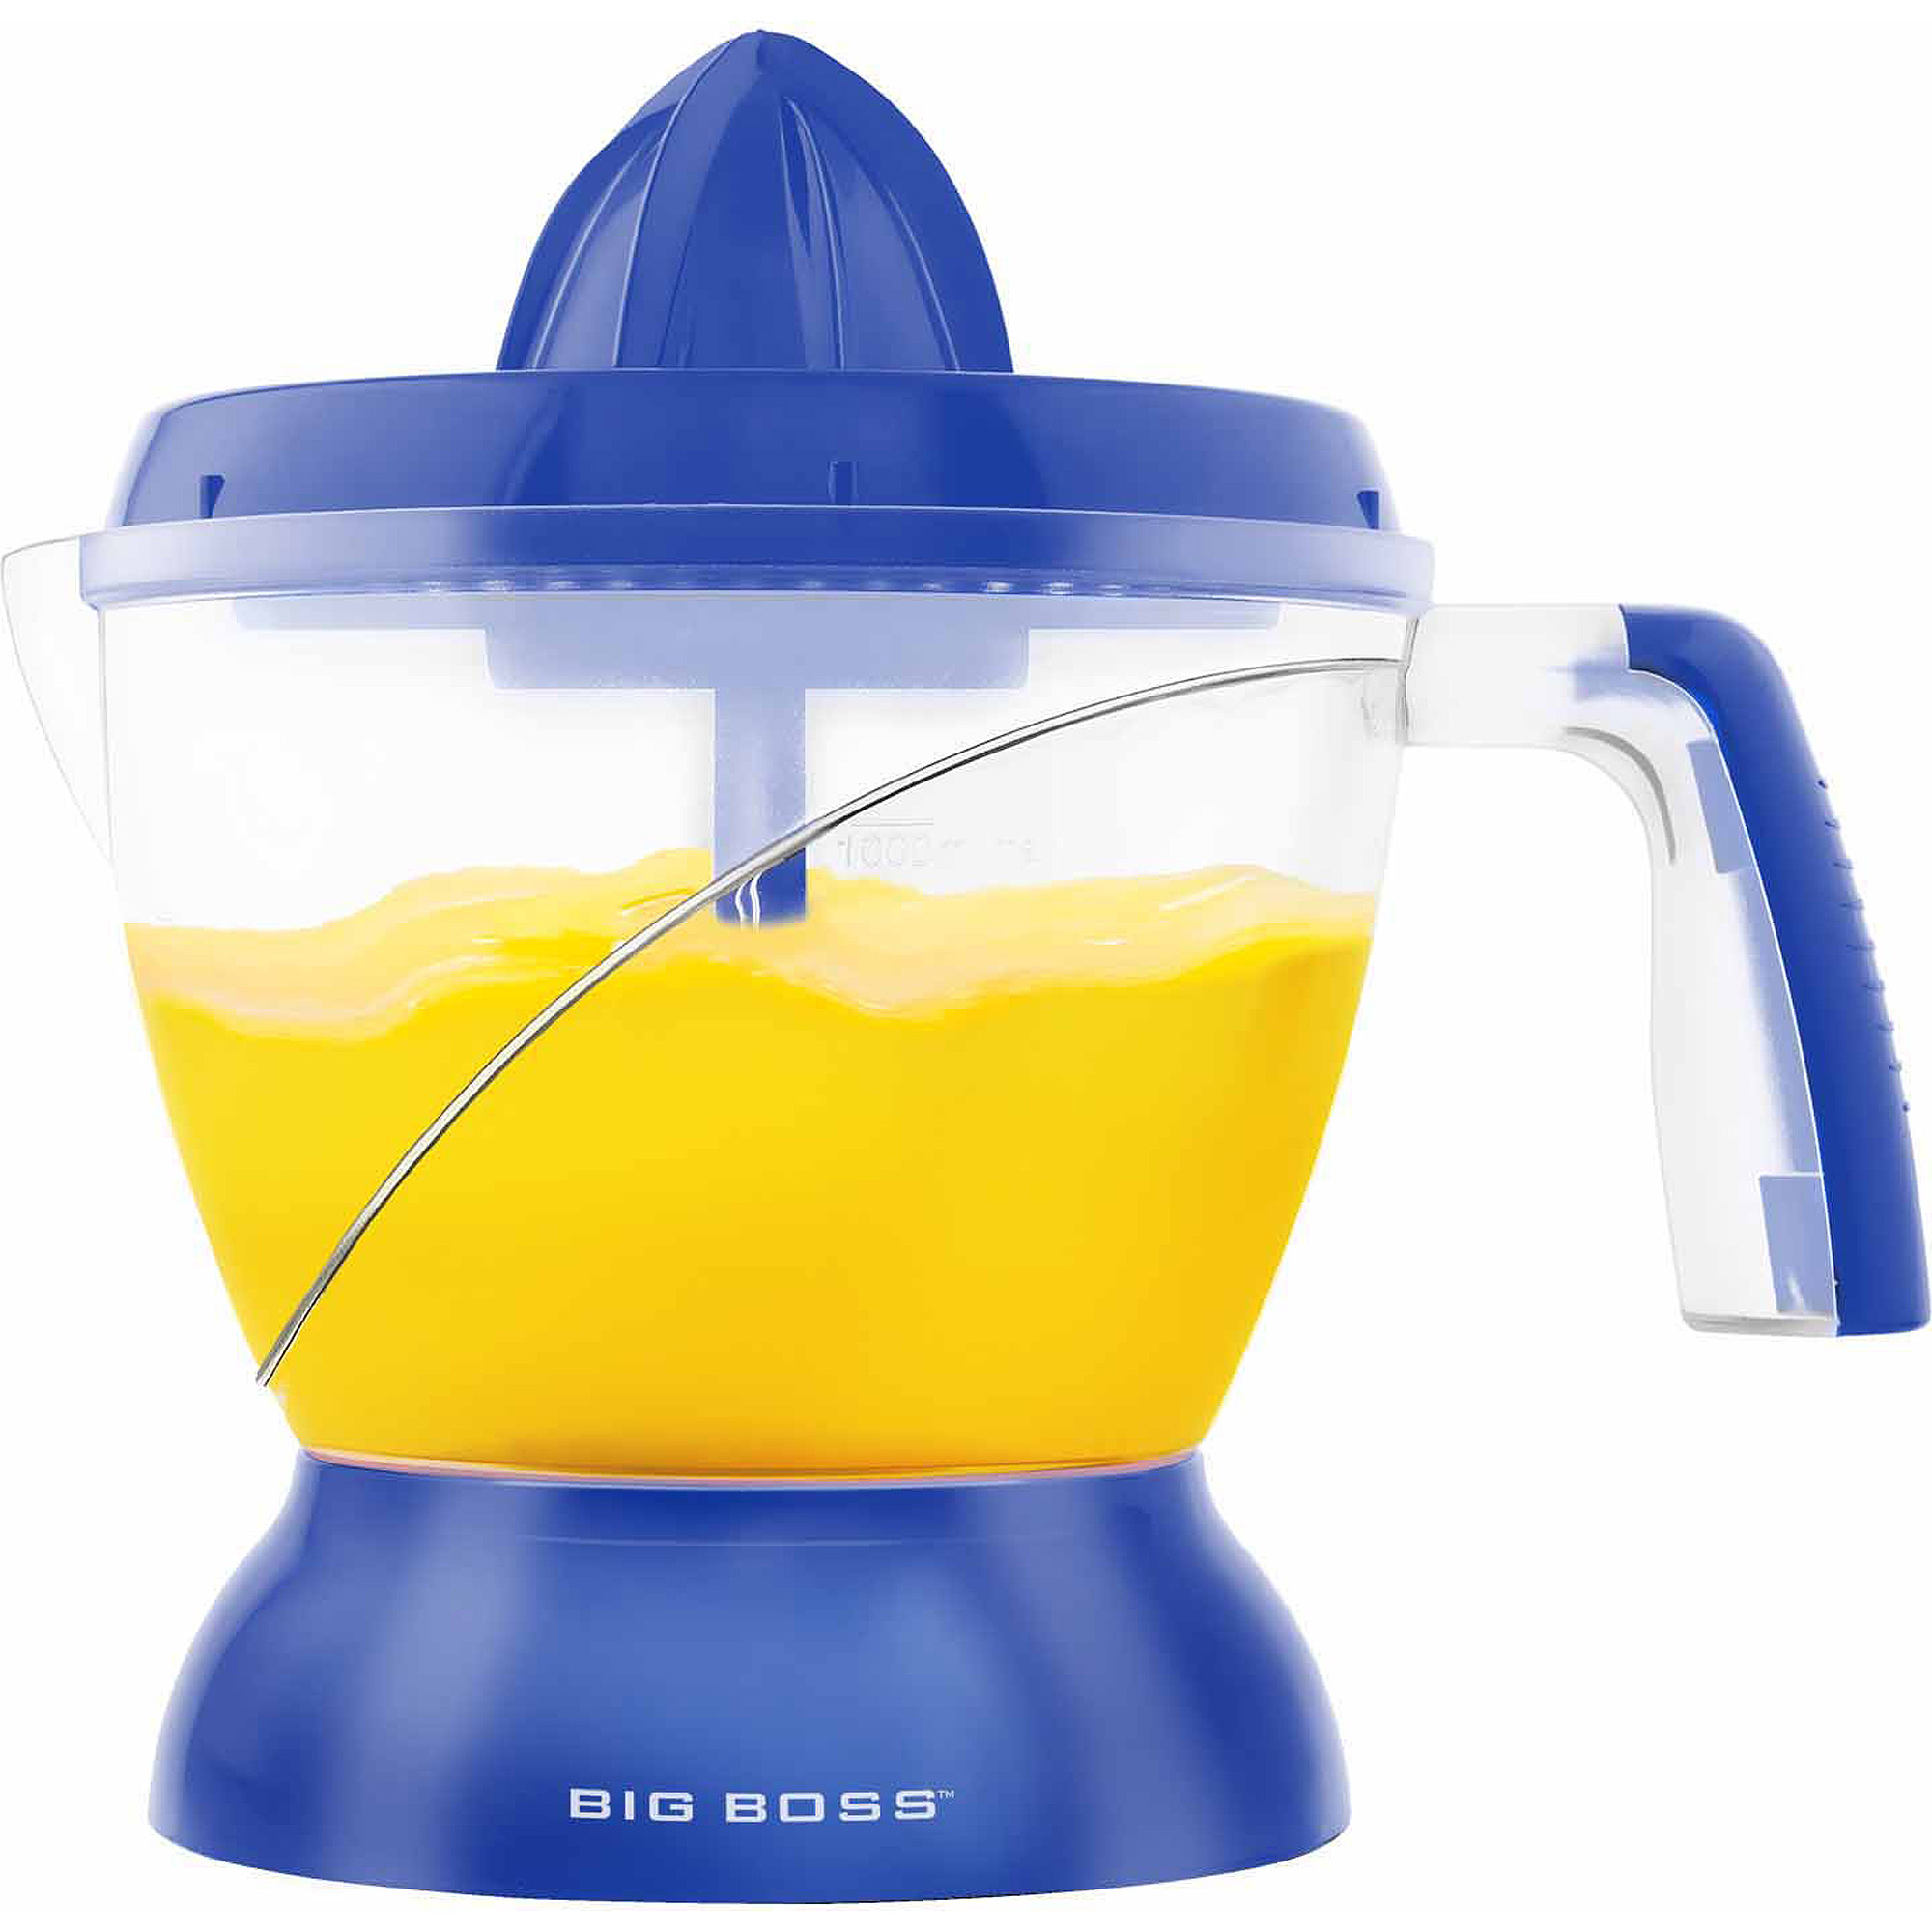 Big Boss Citrus Juicer